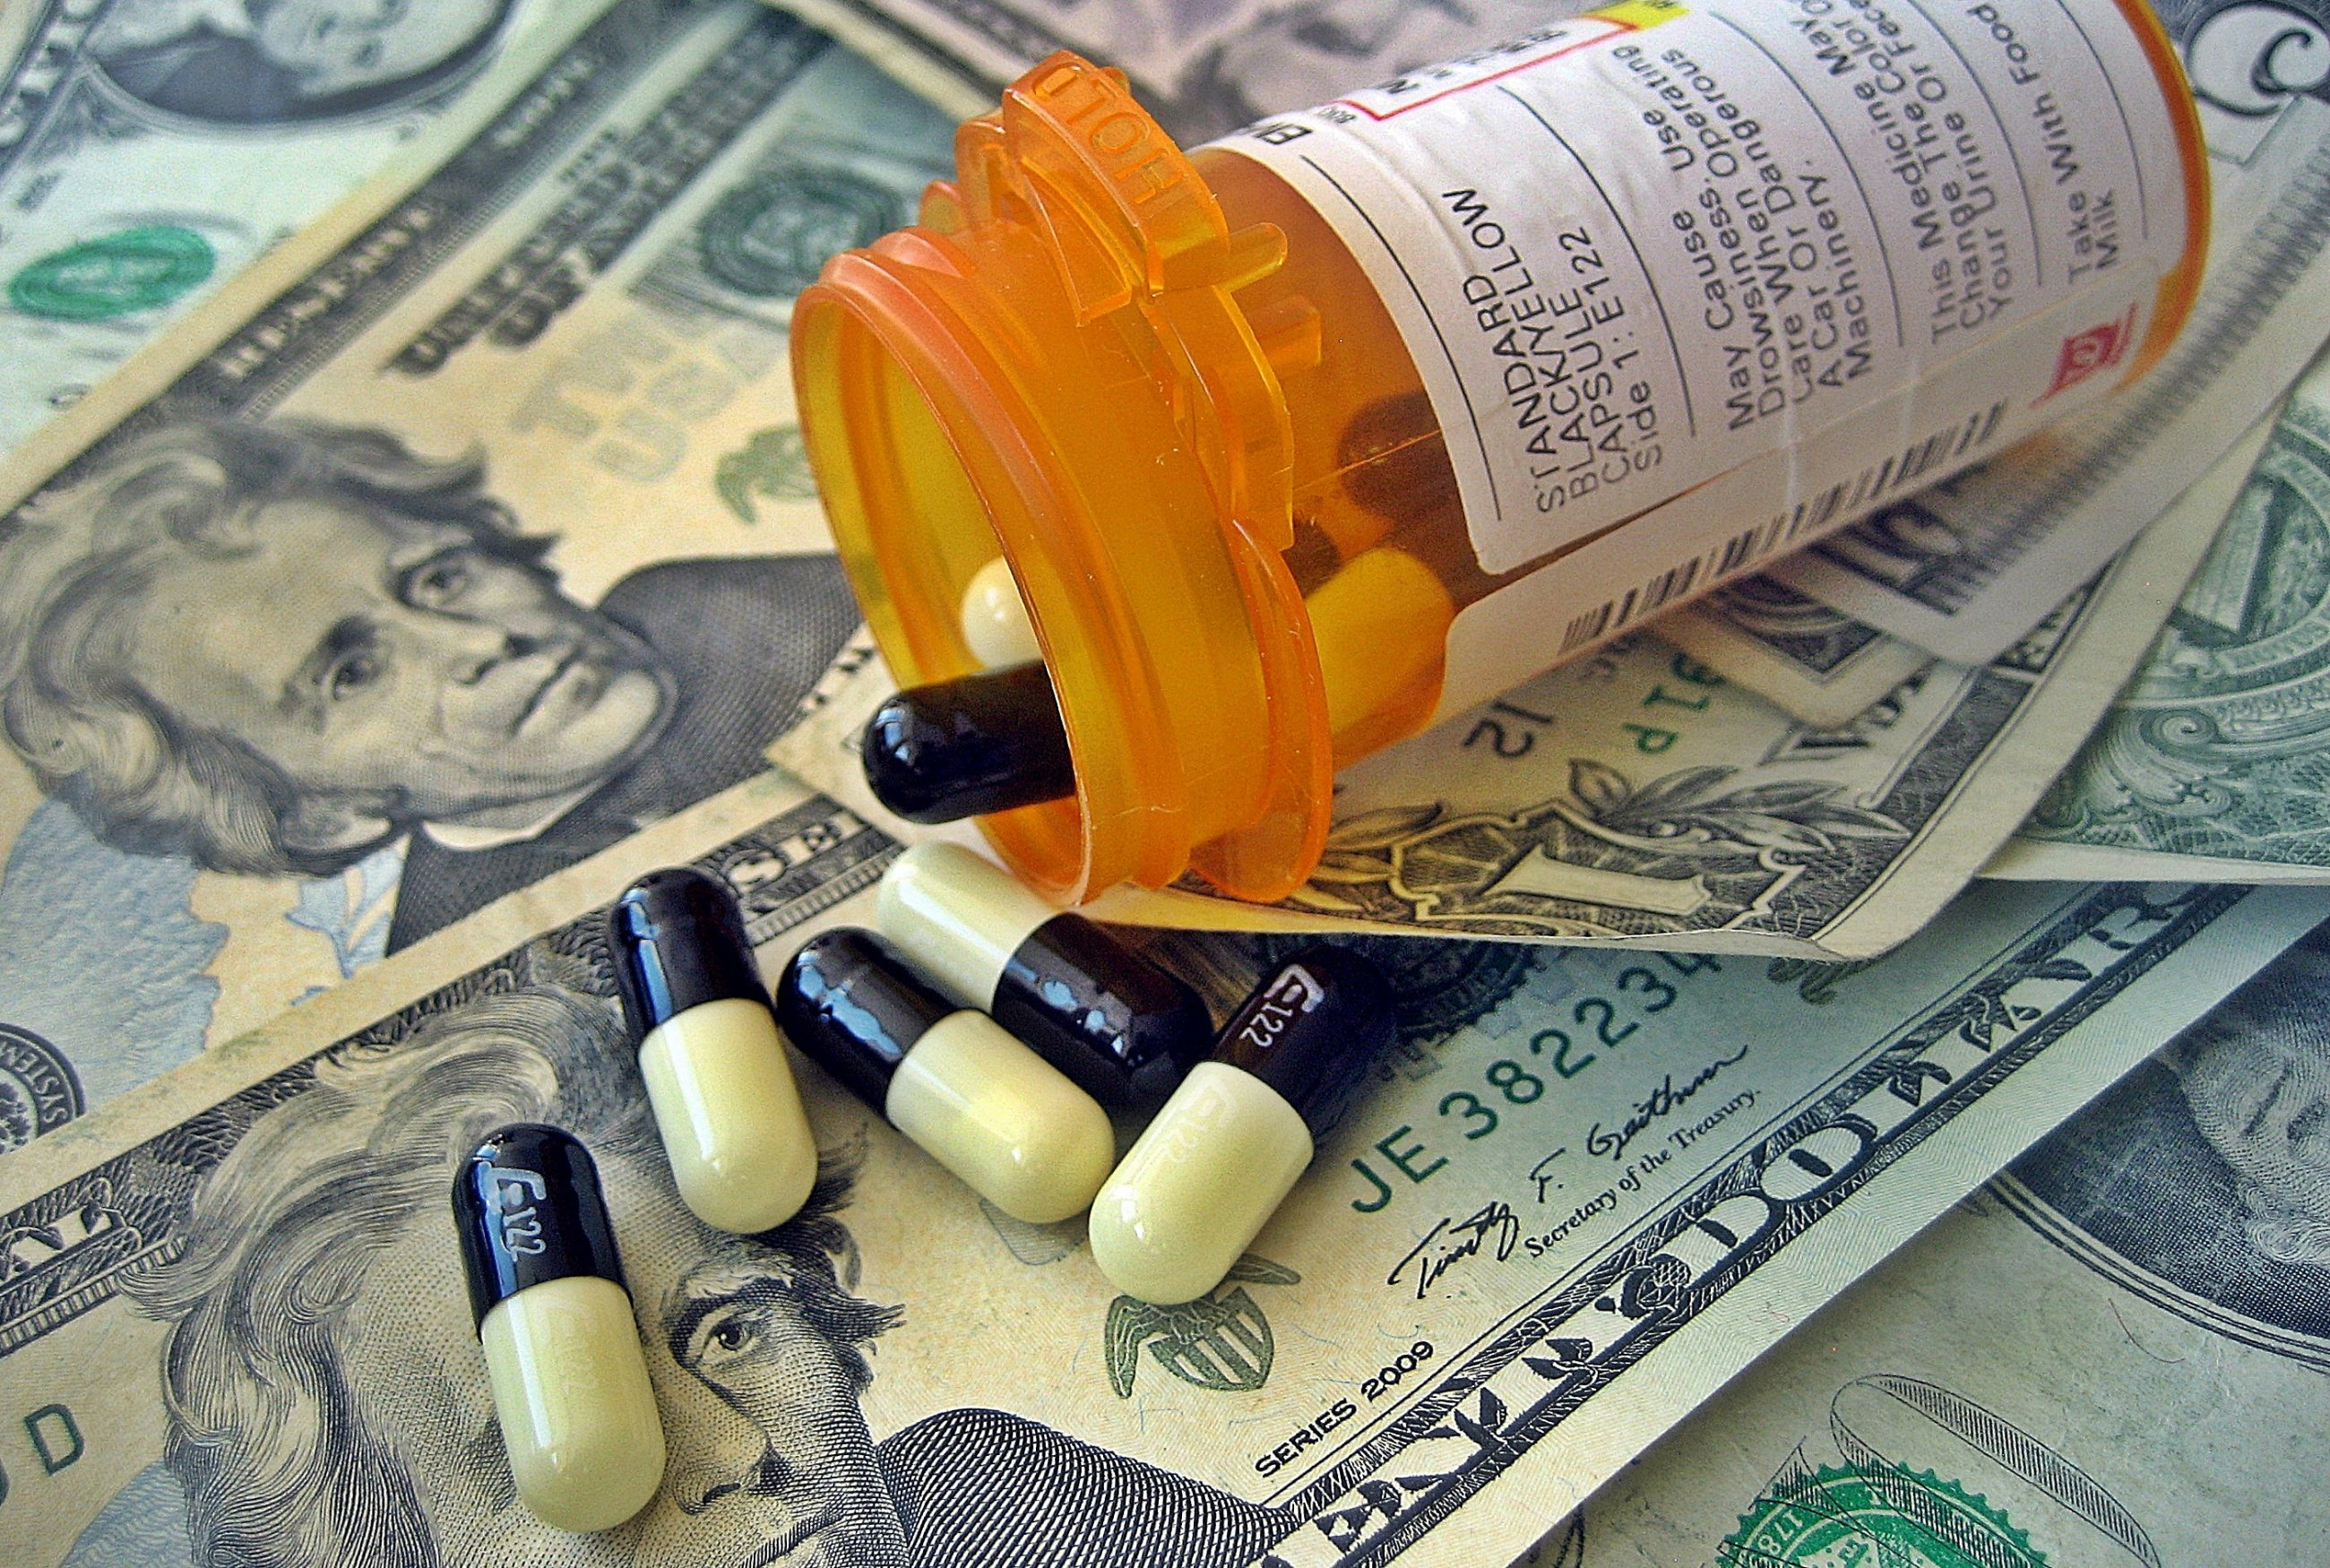 DRUG DISCOUNTING TO INSURERS SOARS FROM 28% TO 41% IN 5 YEARS, WITH NO END IN SIGHT